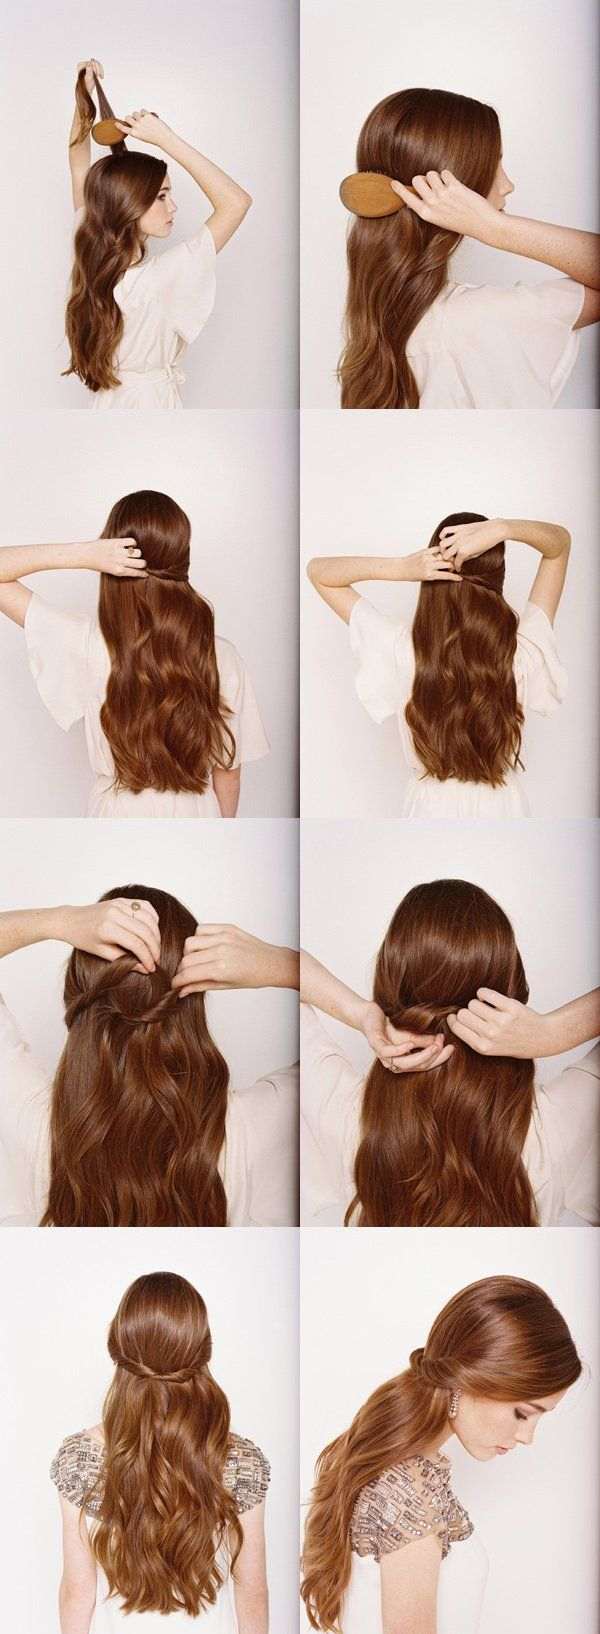 15 Spectacular Diy Hairstyle Ideas For A Busy Morning Made For Less Than 5 Minutes Half Up Hair Diy Wedding Hair Wedding Hairstyles For Long Hair